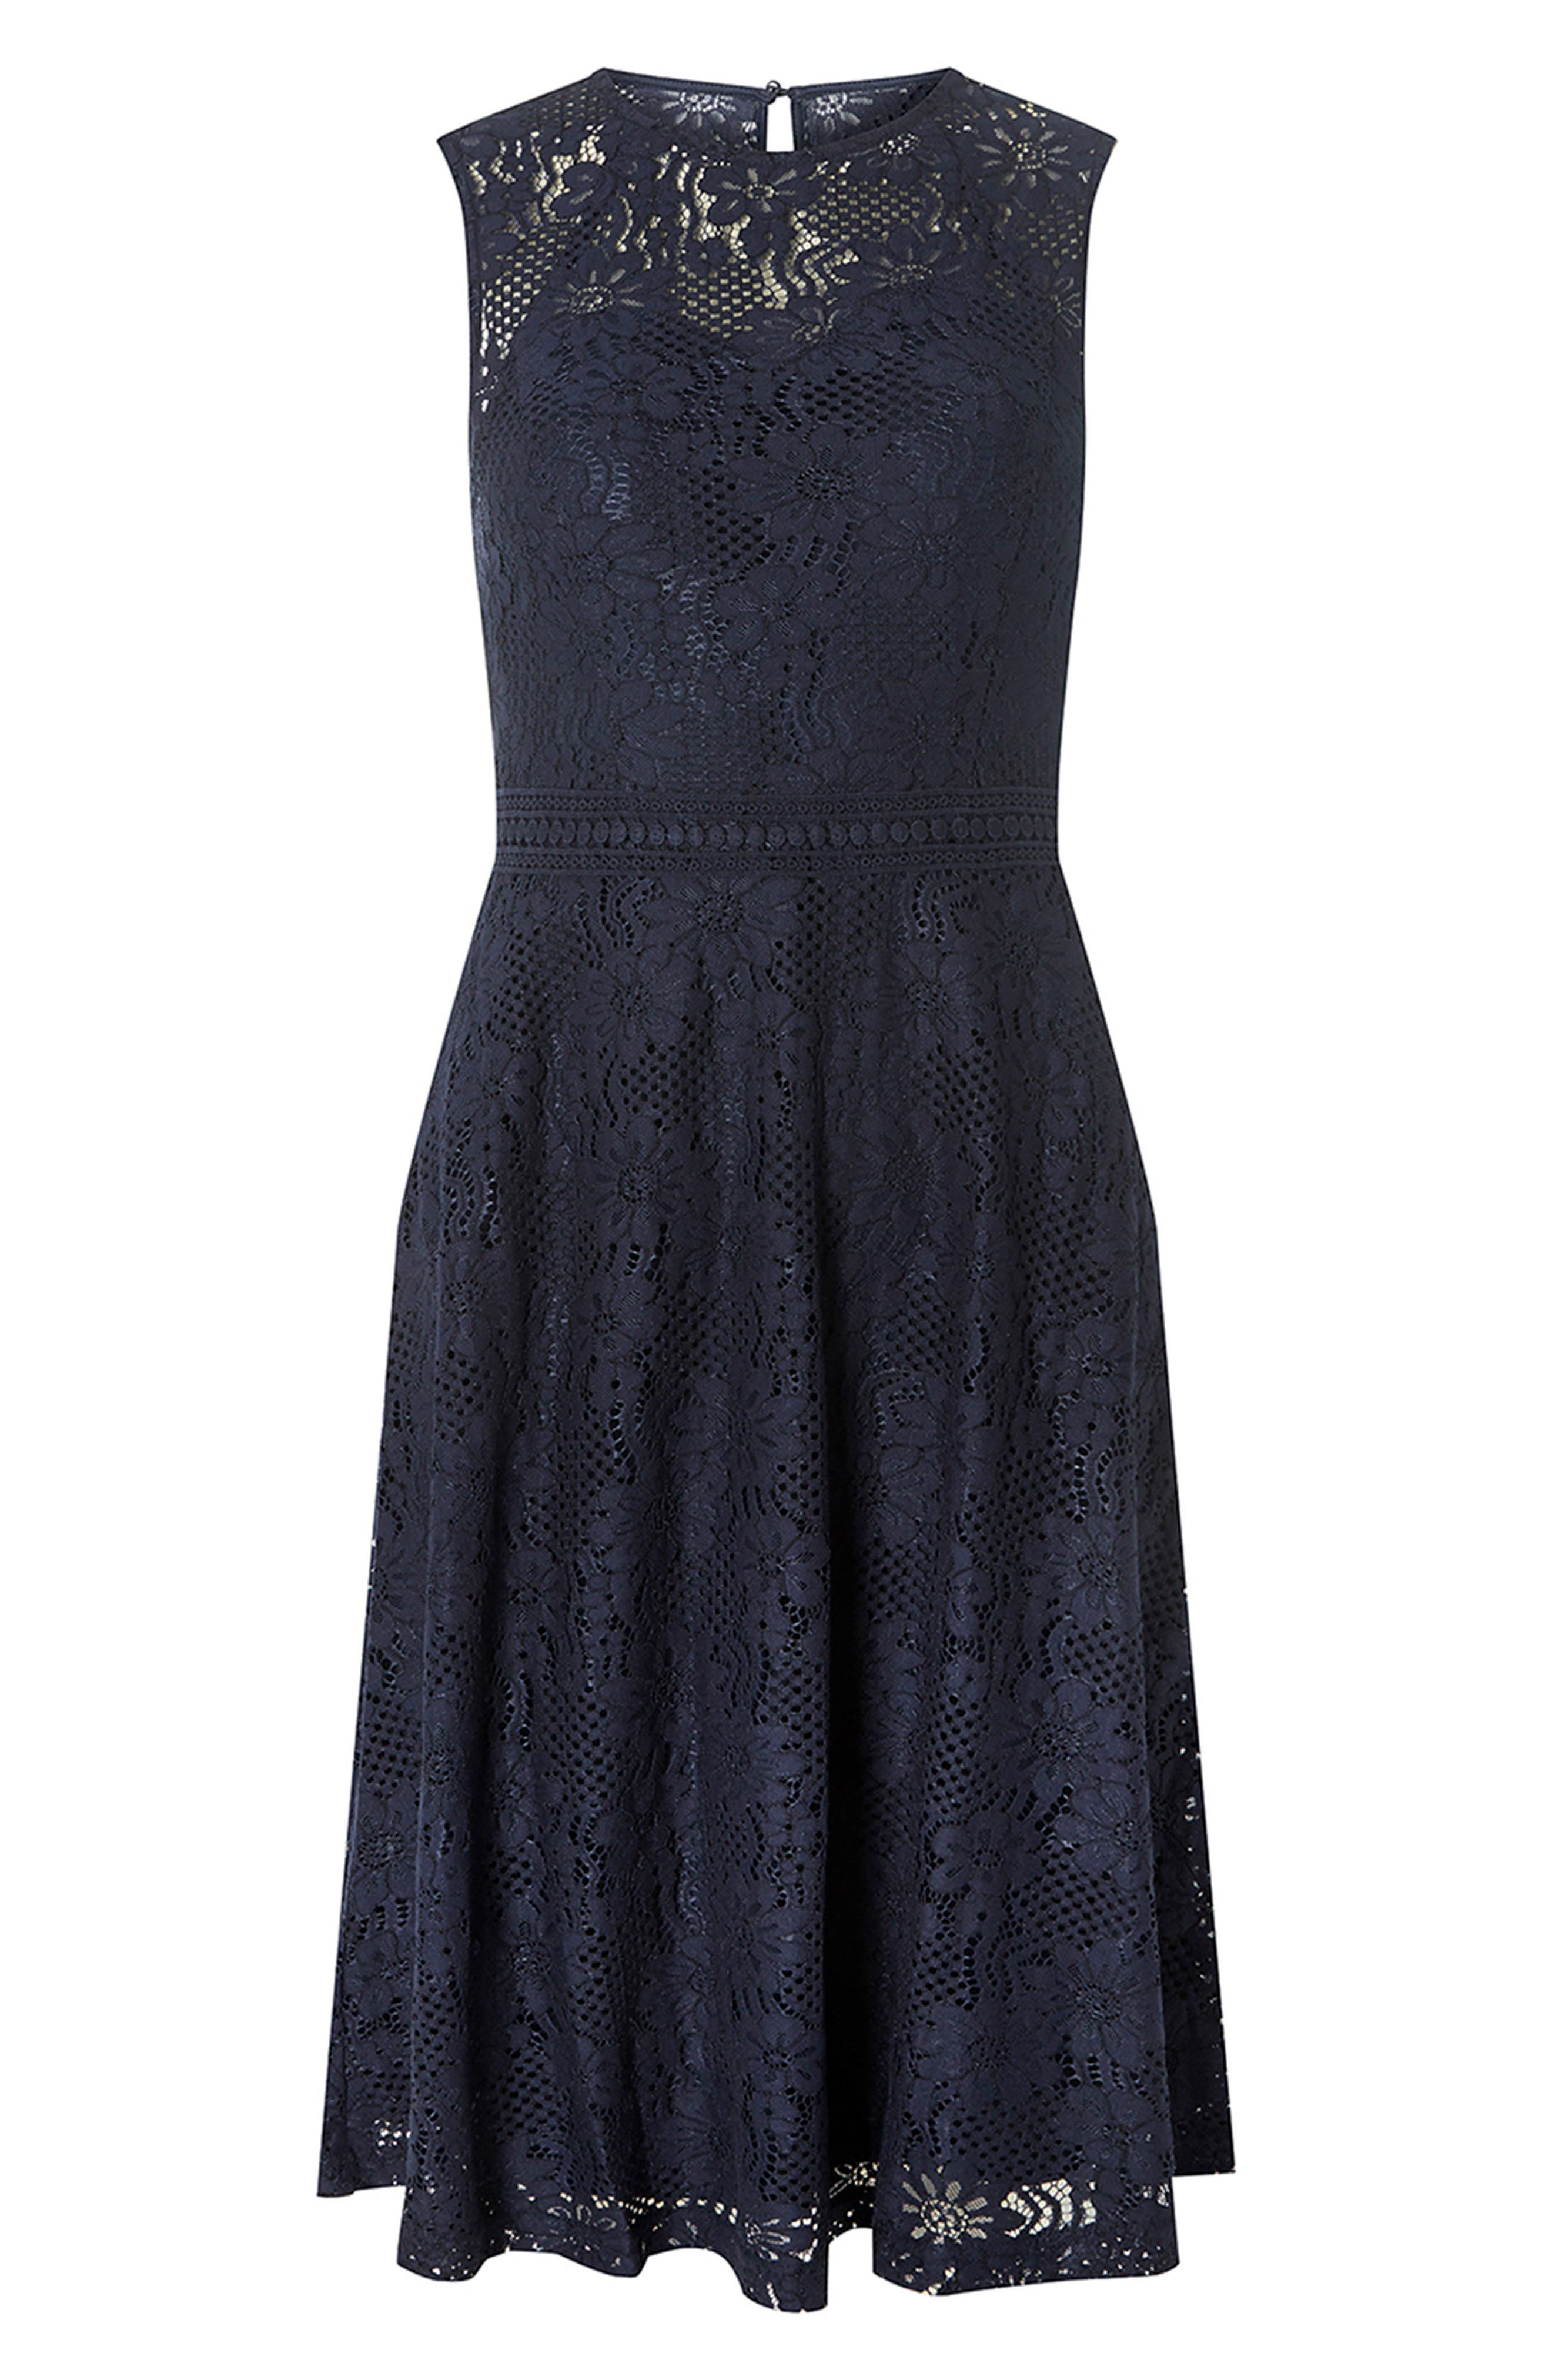 Adele Lace Fit & Flare Dress,                             Alternate thumbnail 4, color,                             Navy